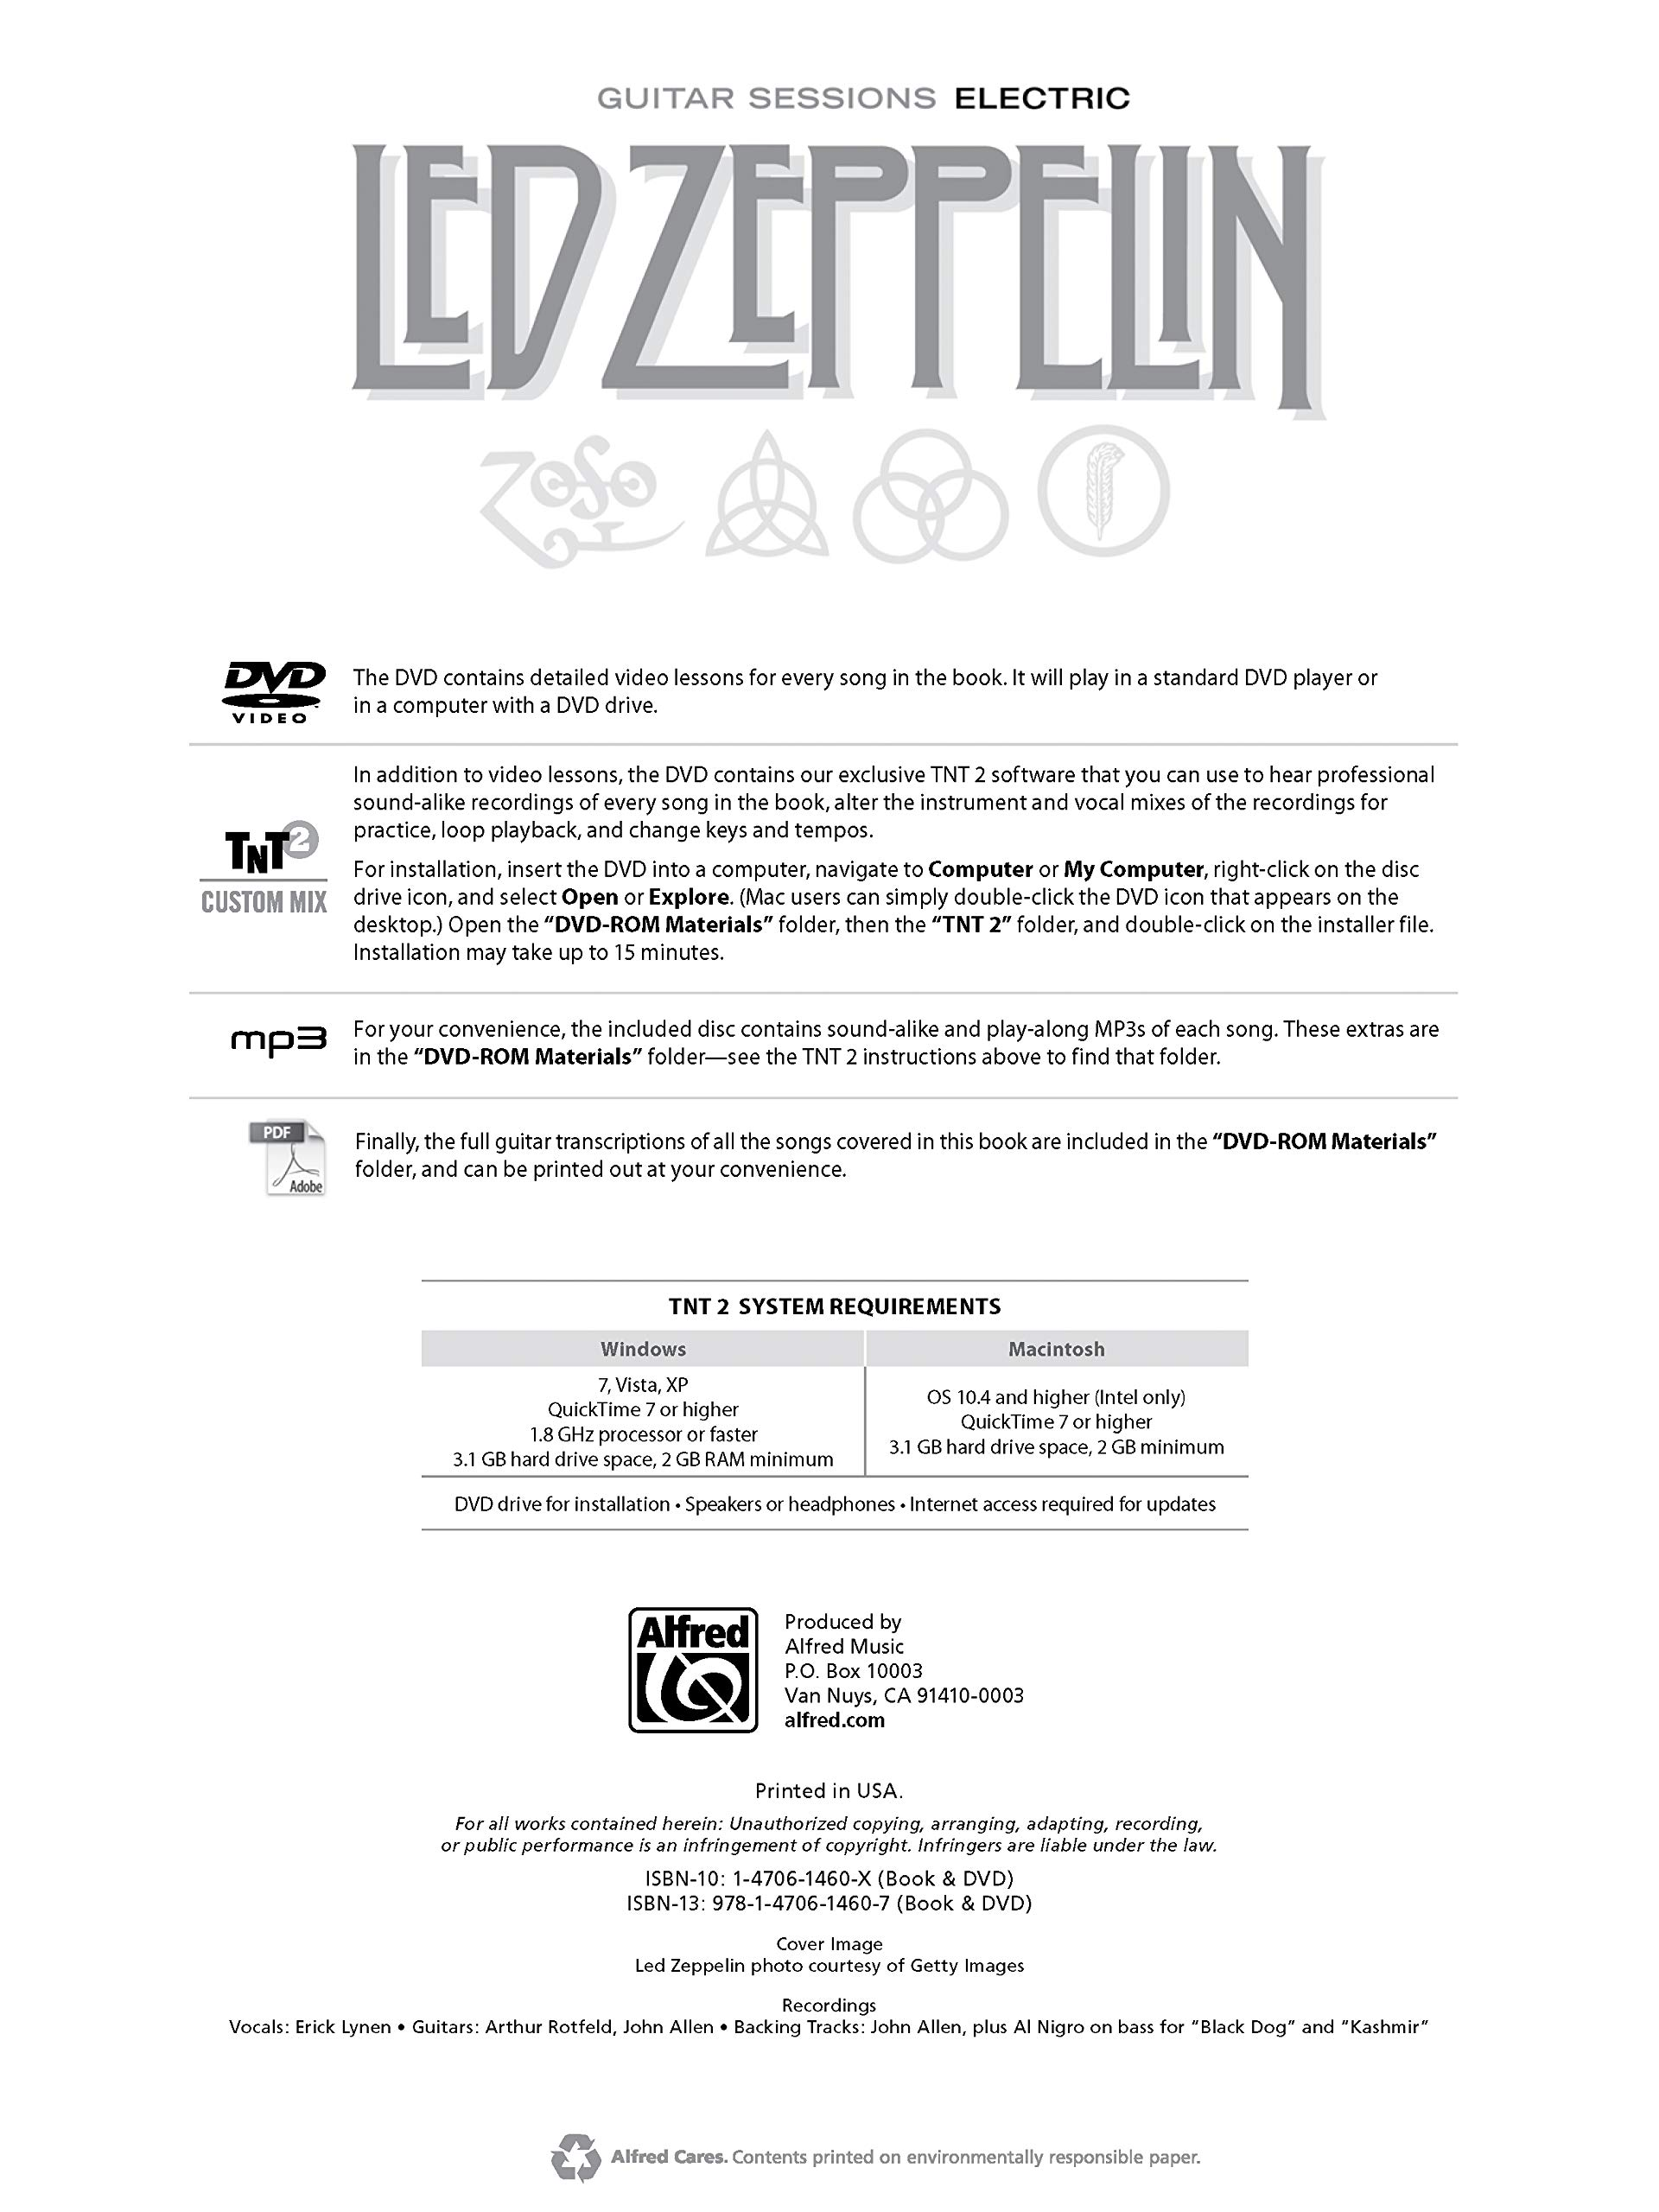 Led Zeppelin -- Electric Sessions: Guitar Tab, Book & DVD Guitar ...